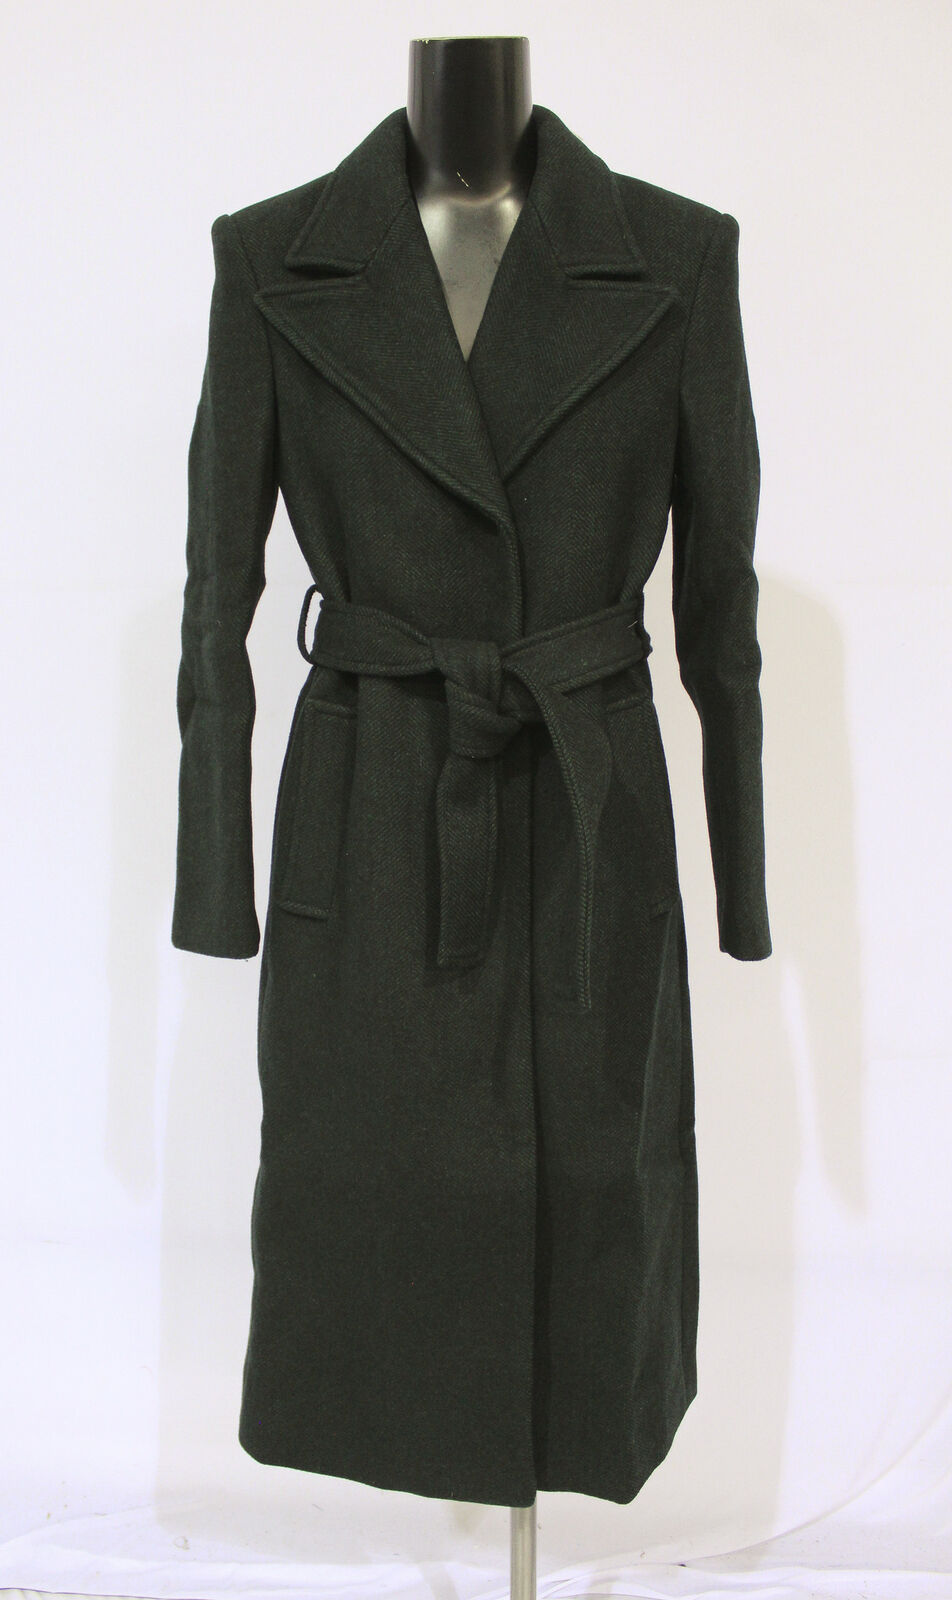 & Other Stories Women's Hourglass Double Breasted Coat CD4 Dark Green Size 2 NWT